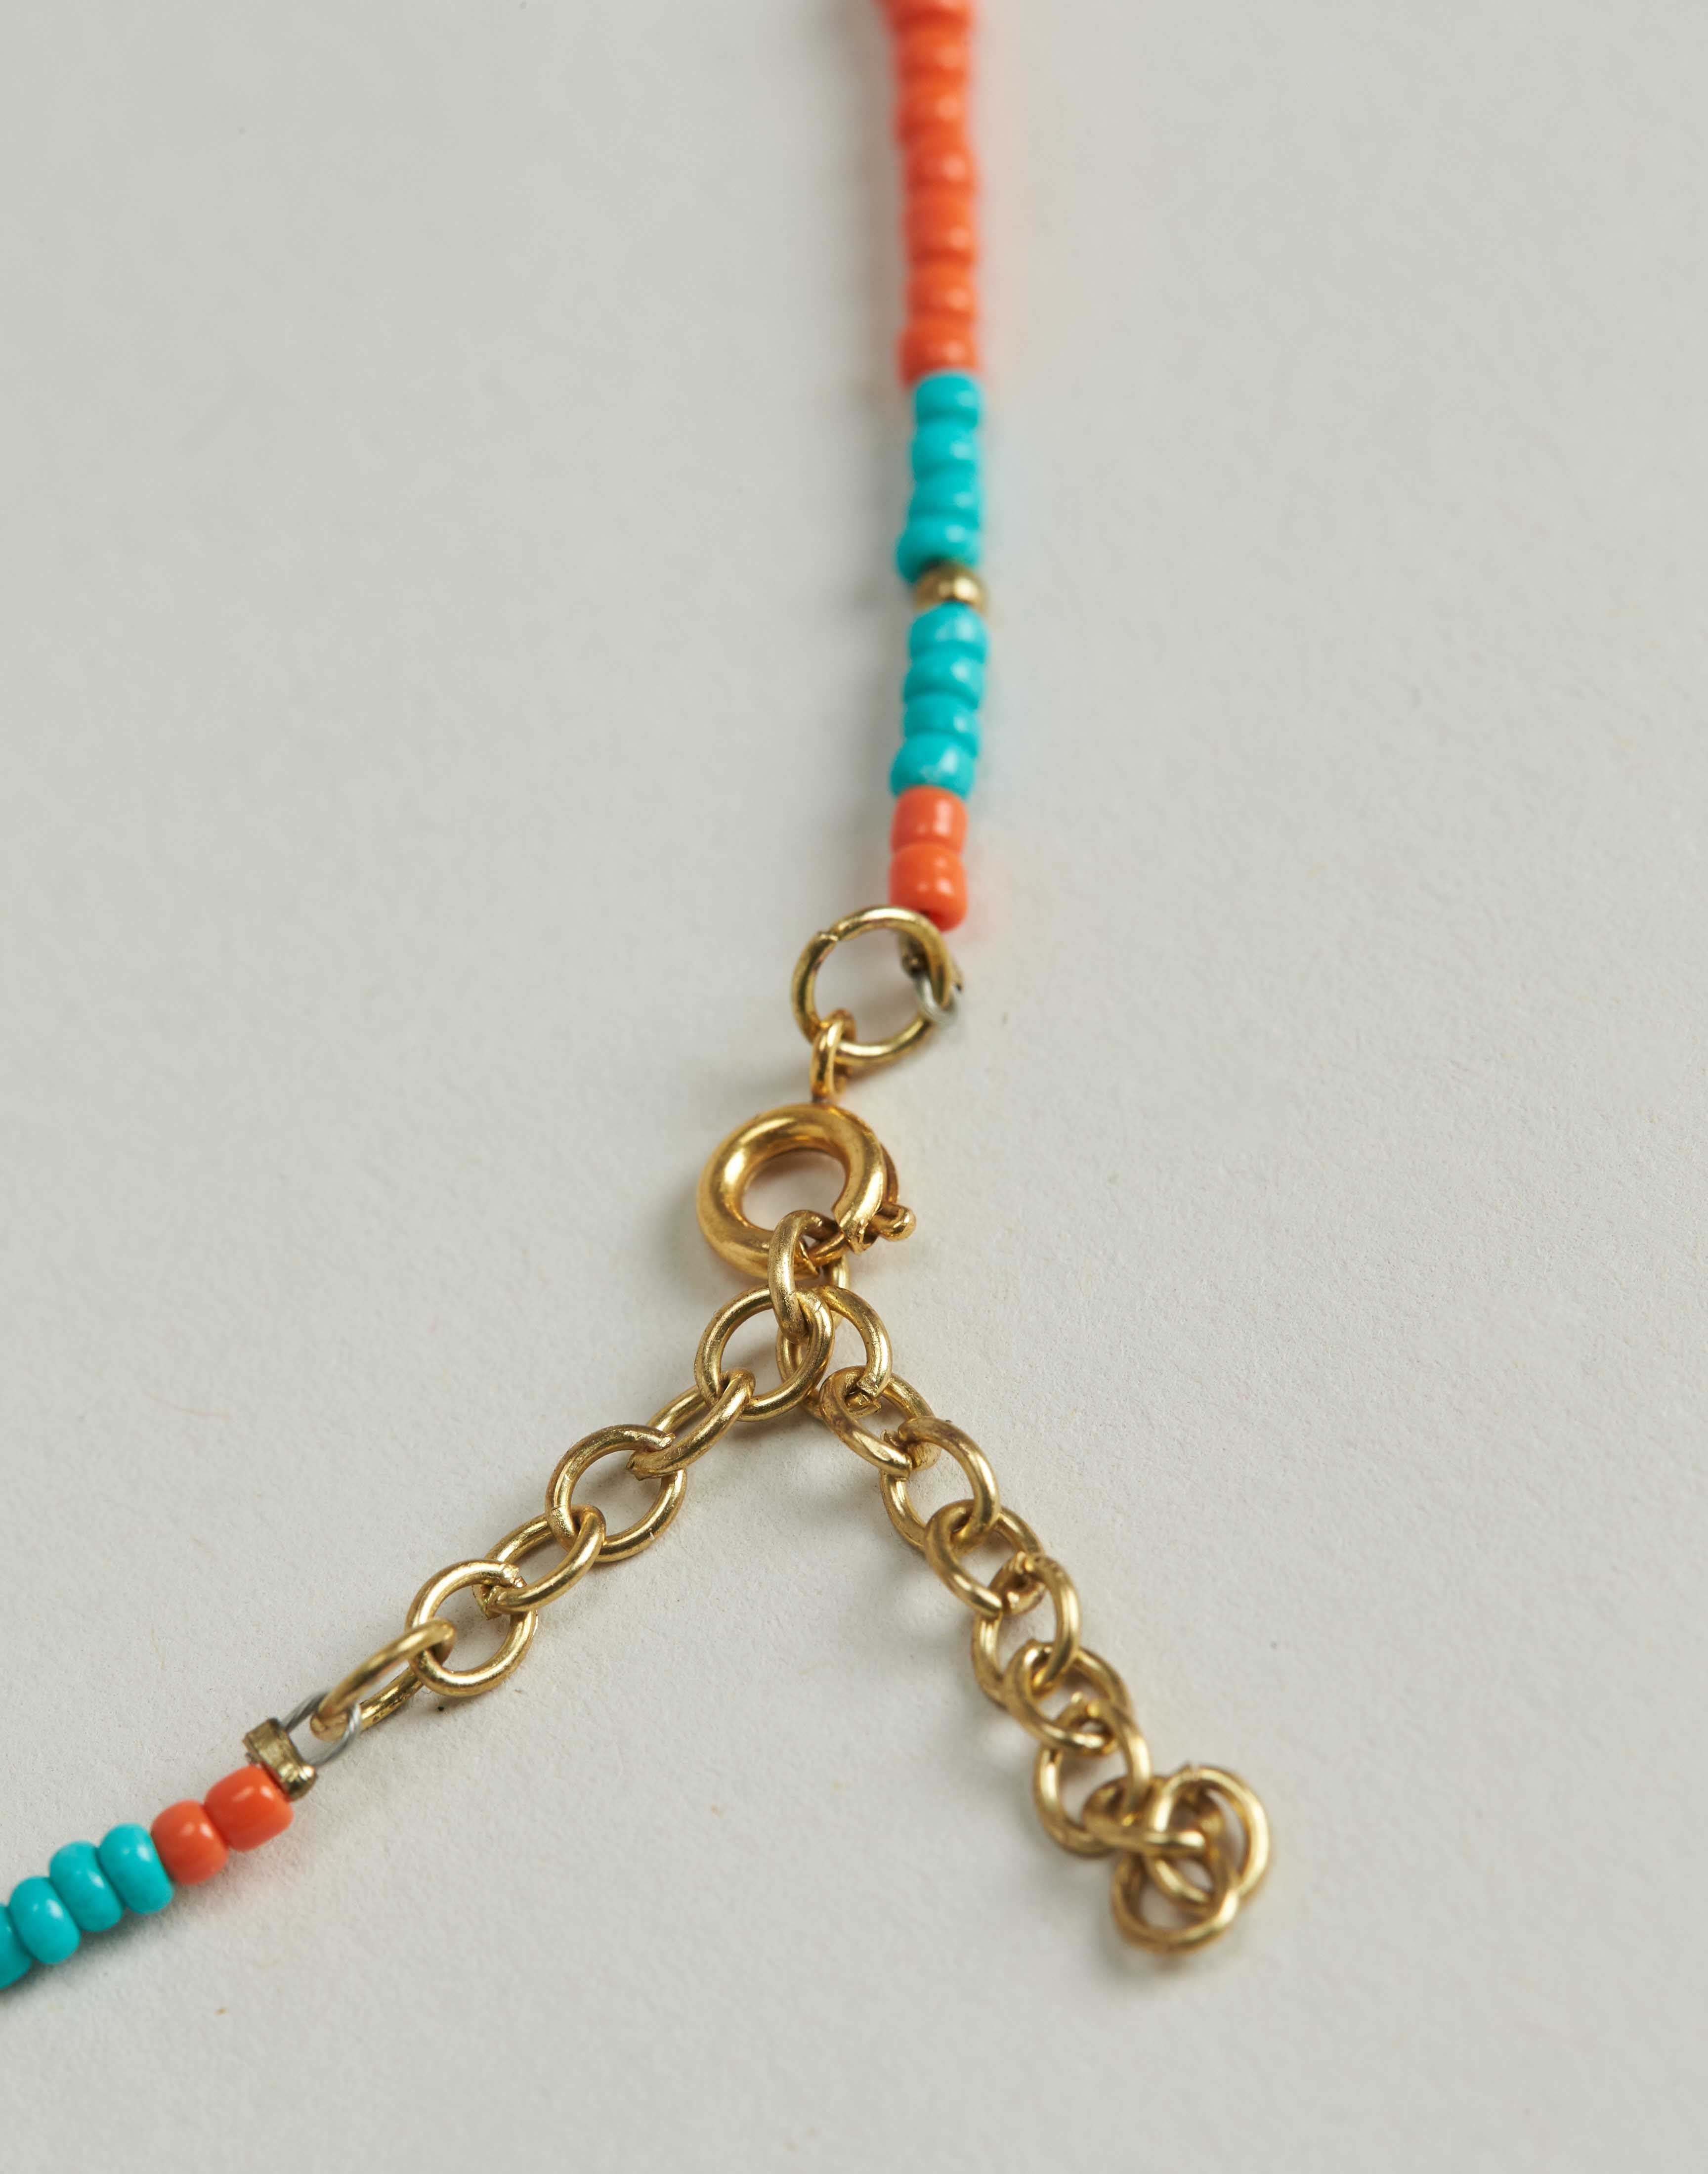 Bicolor and shell beads necklace